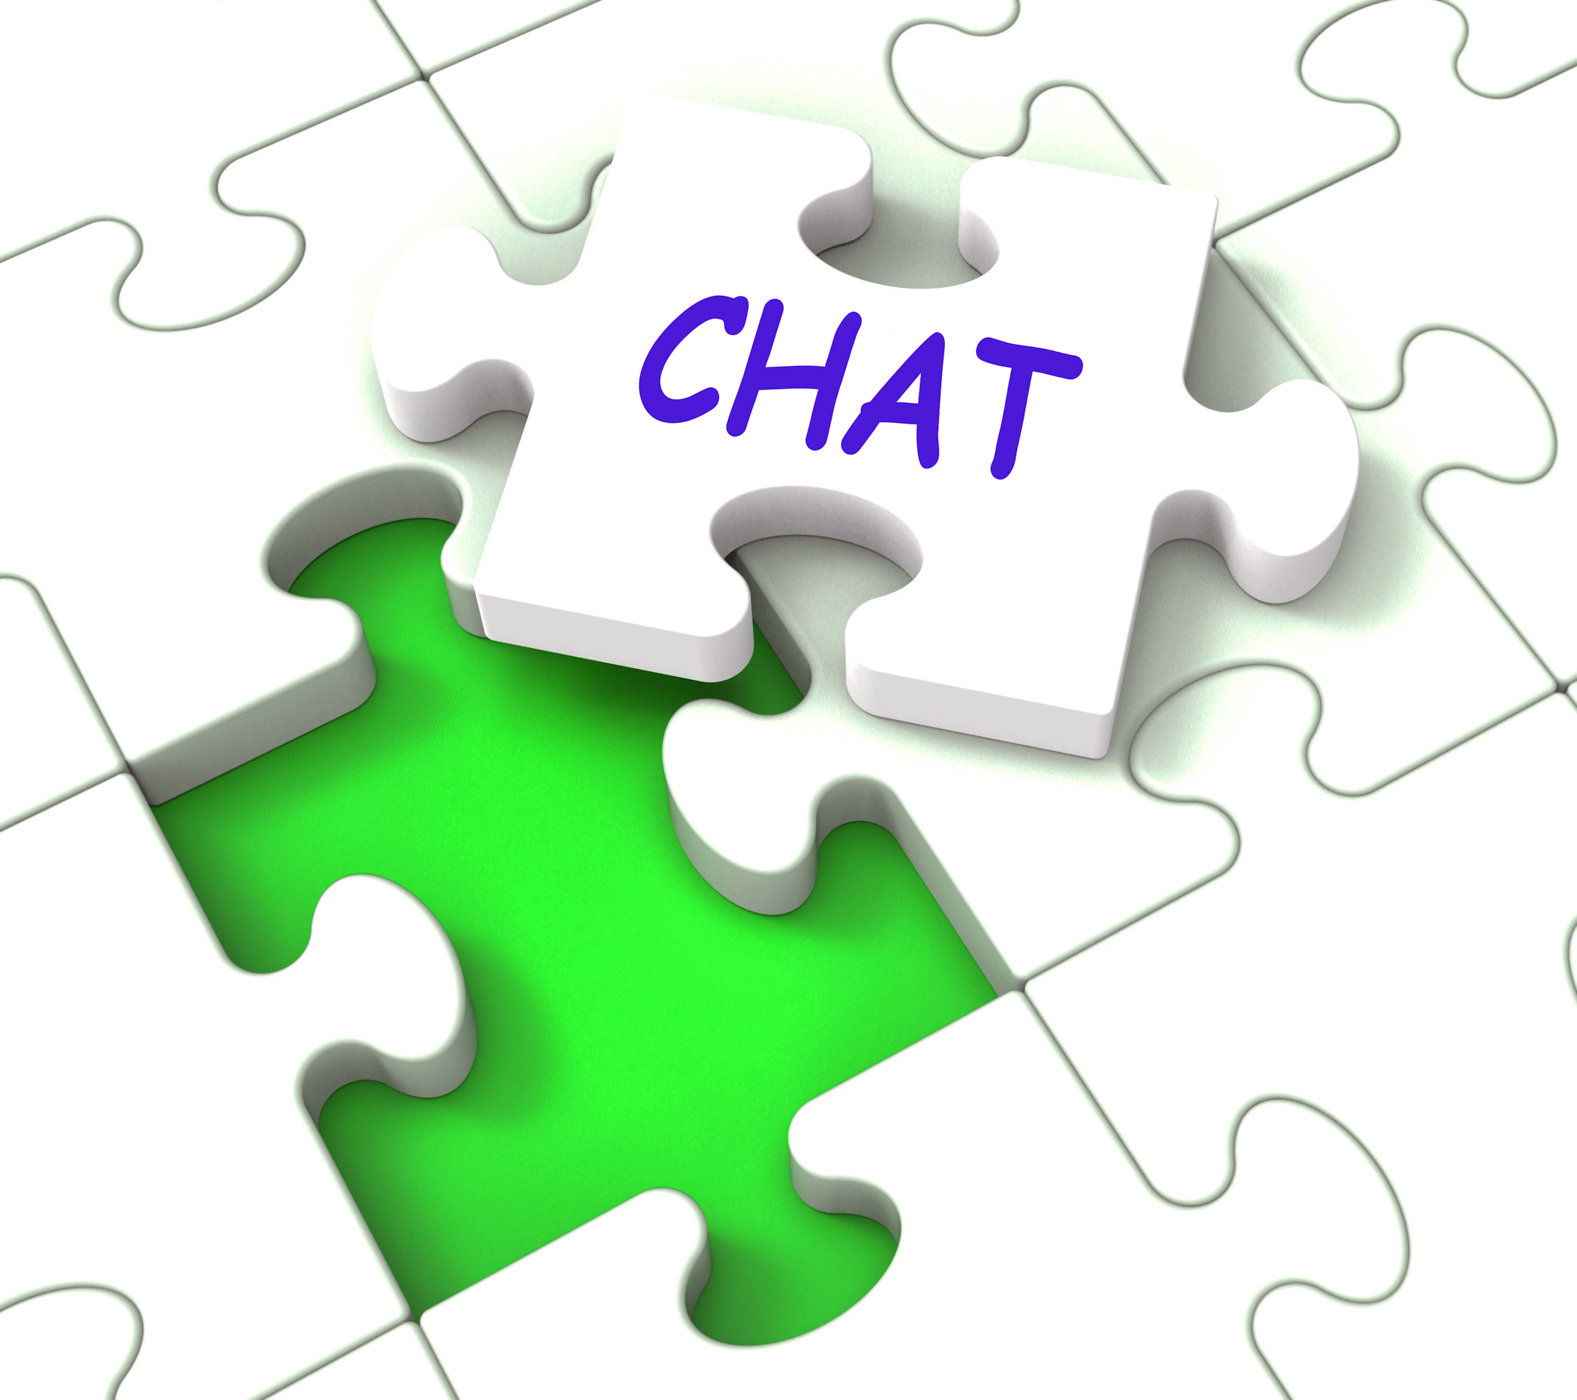 Chat Jigsaw Shows Chatting Talking Typing Or Texting, Call, Chat, Chatting, Communicate, HQ Photo